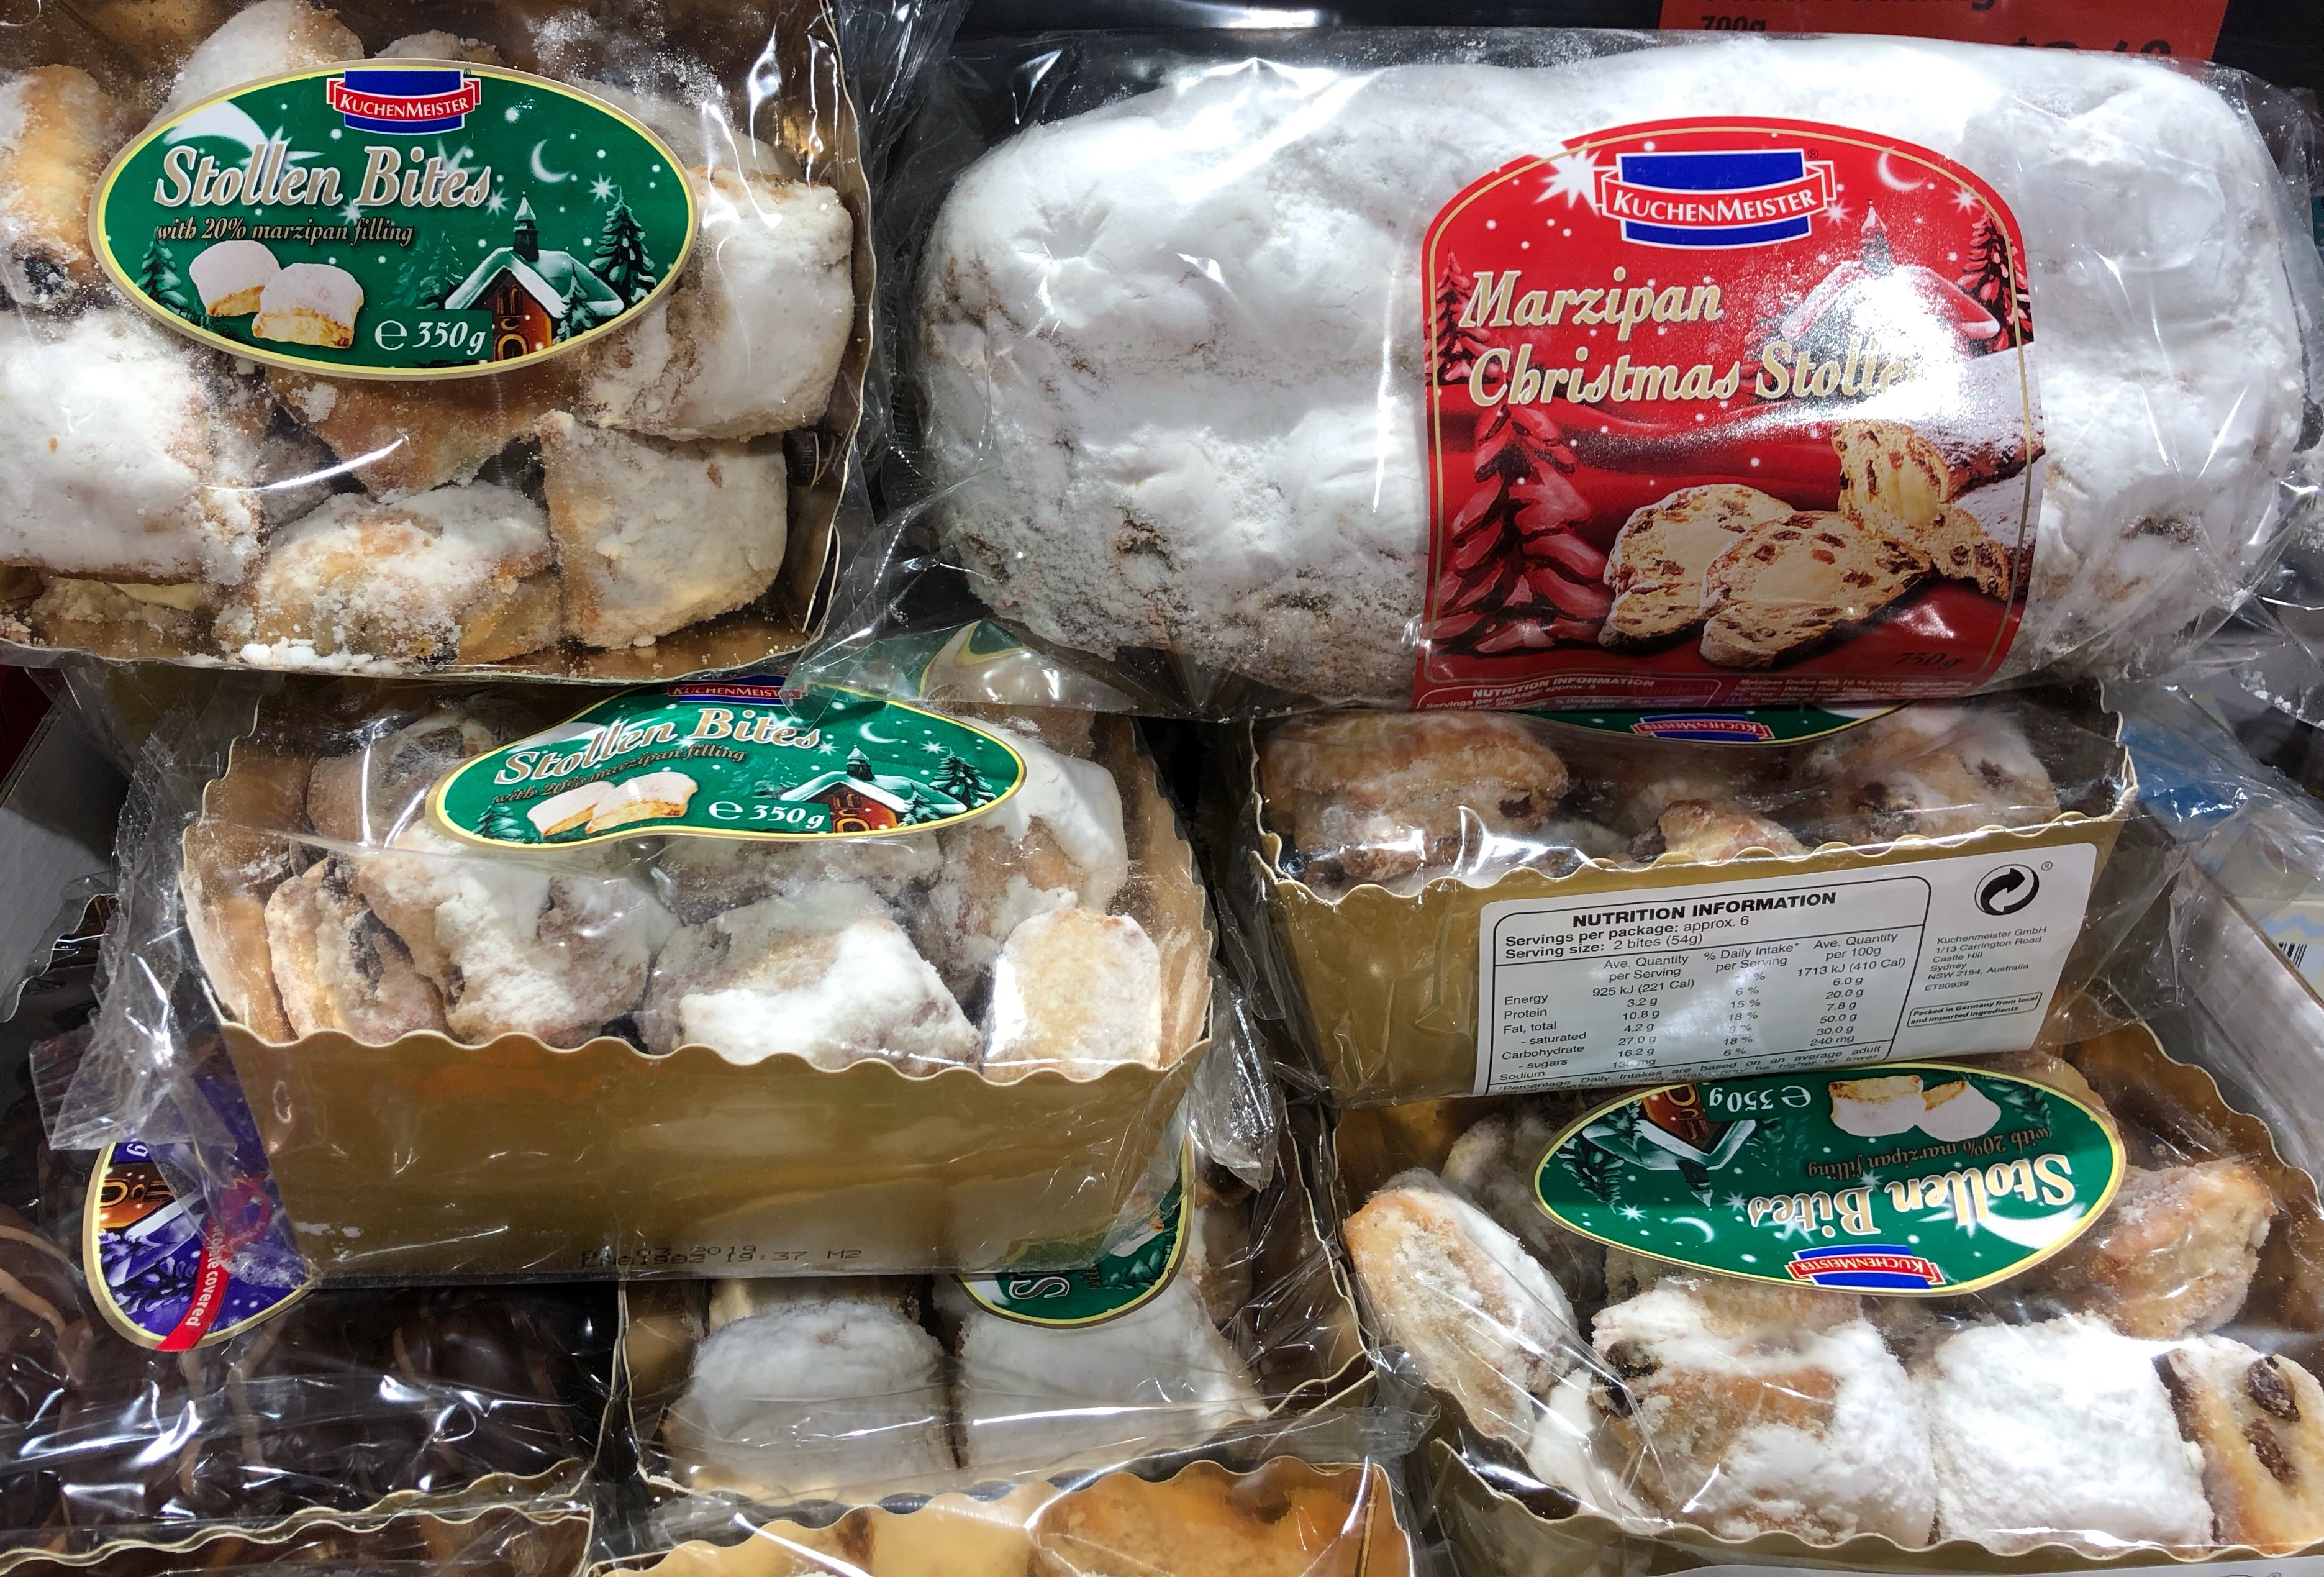 Marzipan Christmas Stollen from Aldi